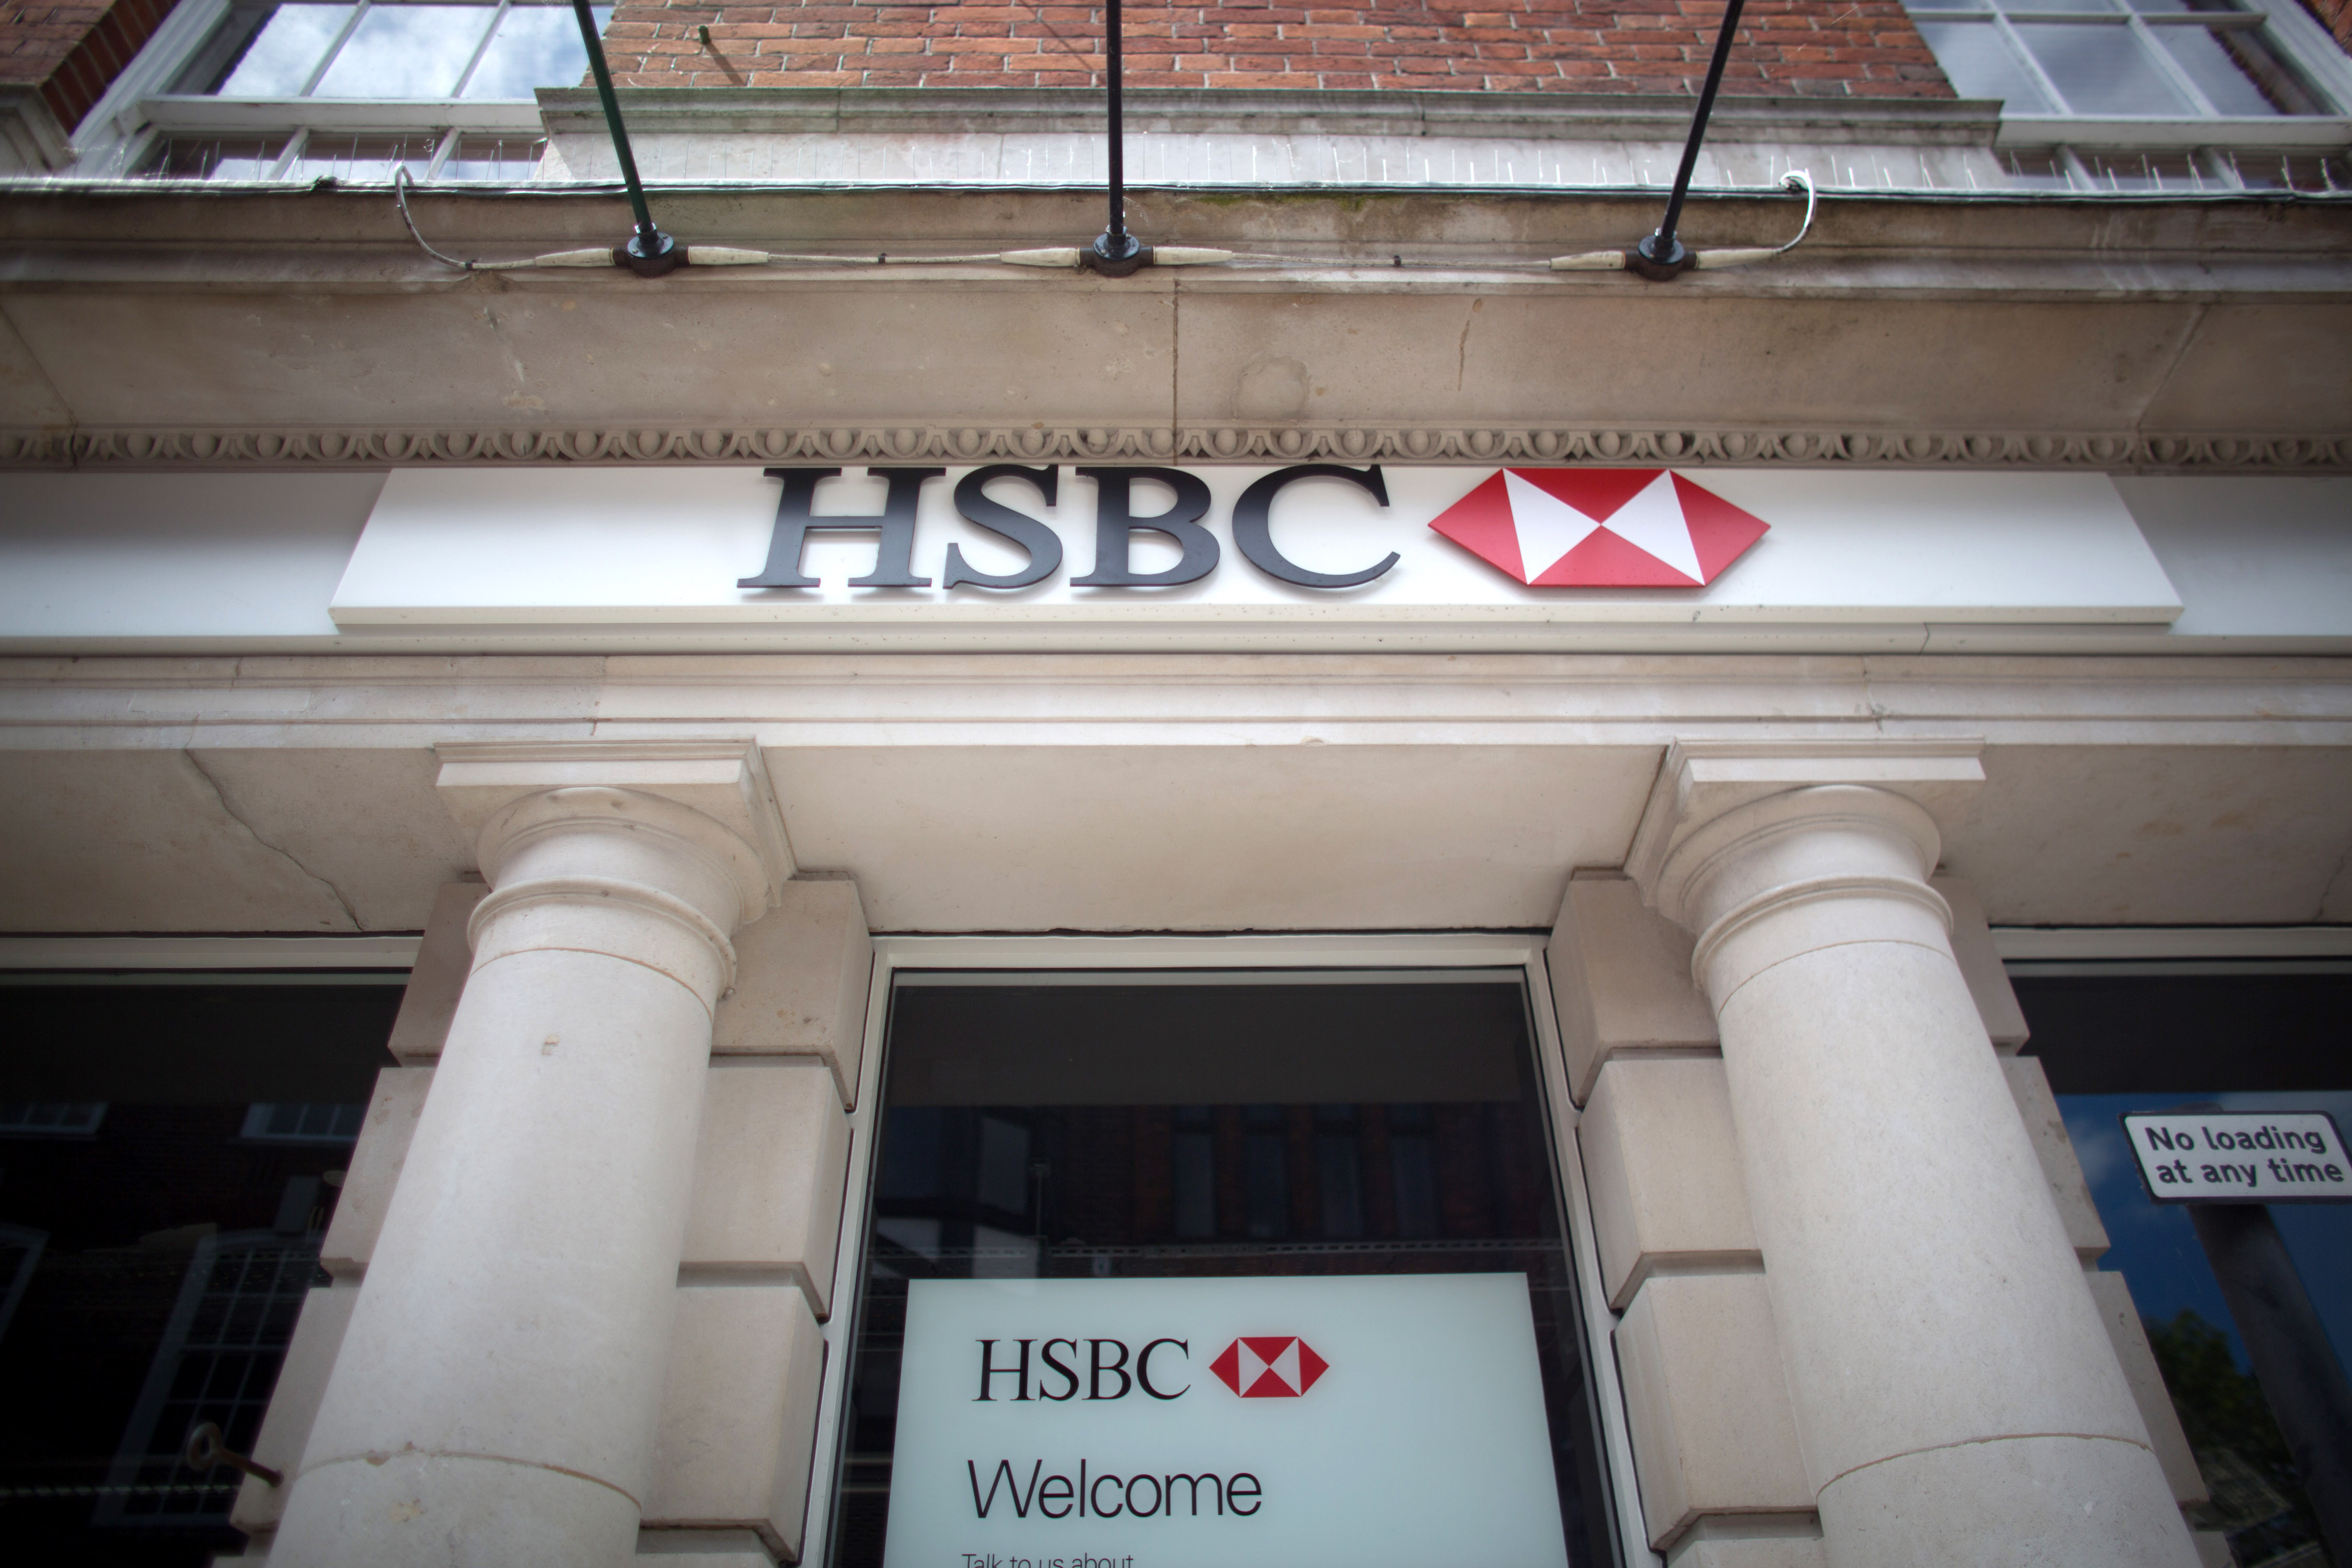 A branch of HSBC is seen on the high street in Salisbury city centre on June 9, 2015 in Wiltshire, England.